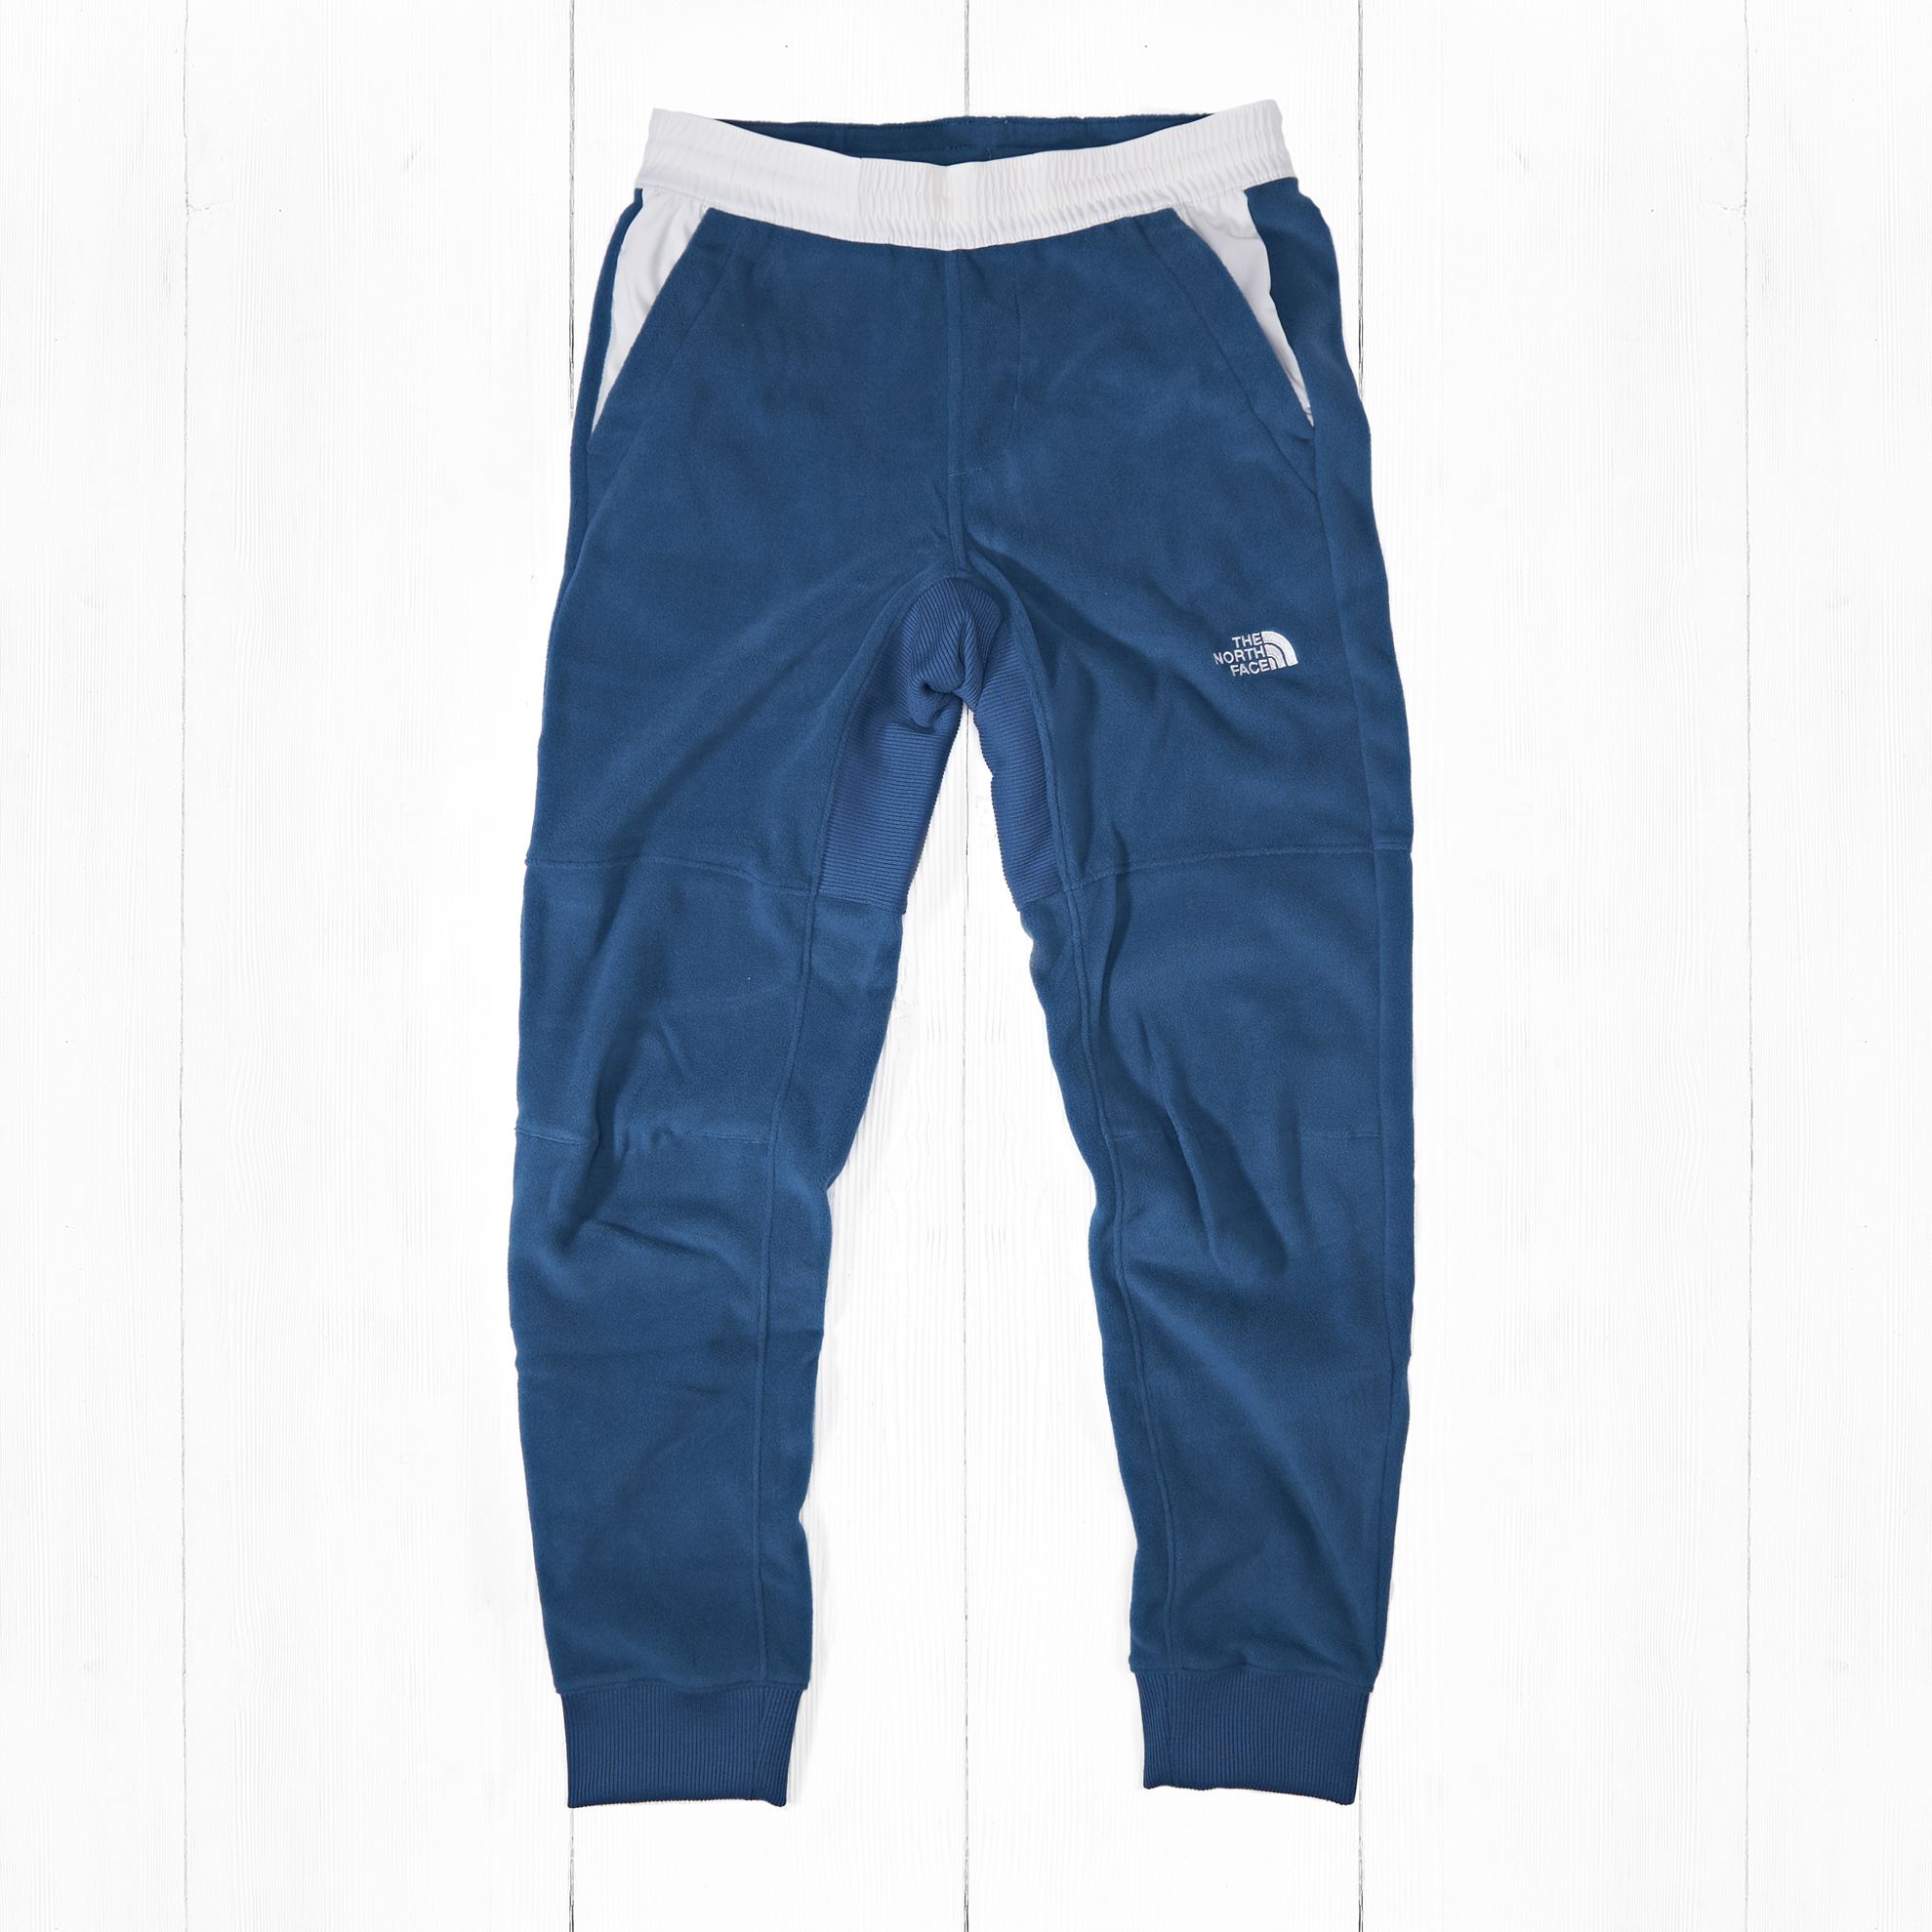 Штаны The North Face 1990 STAFF Blue Wing